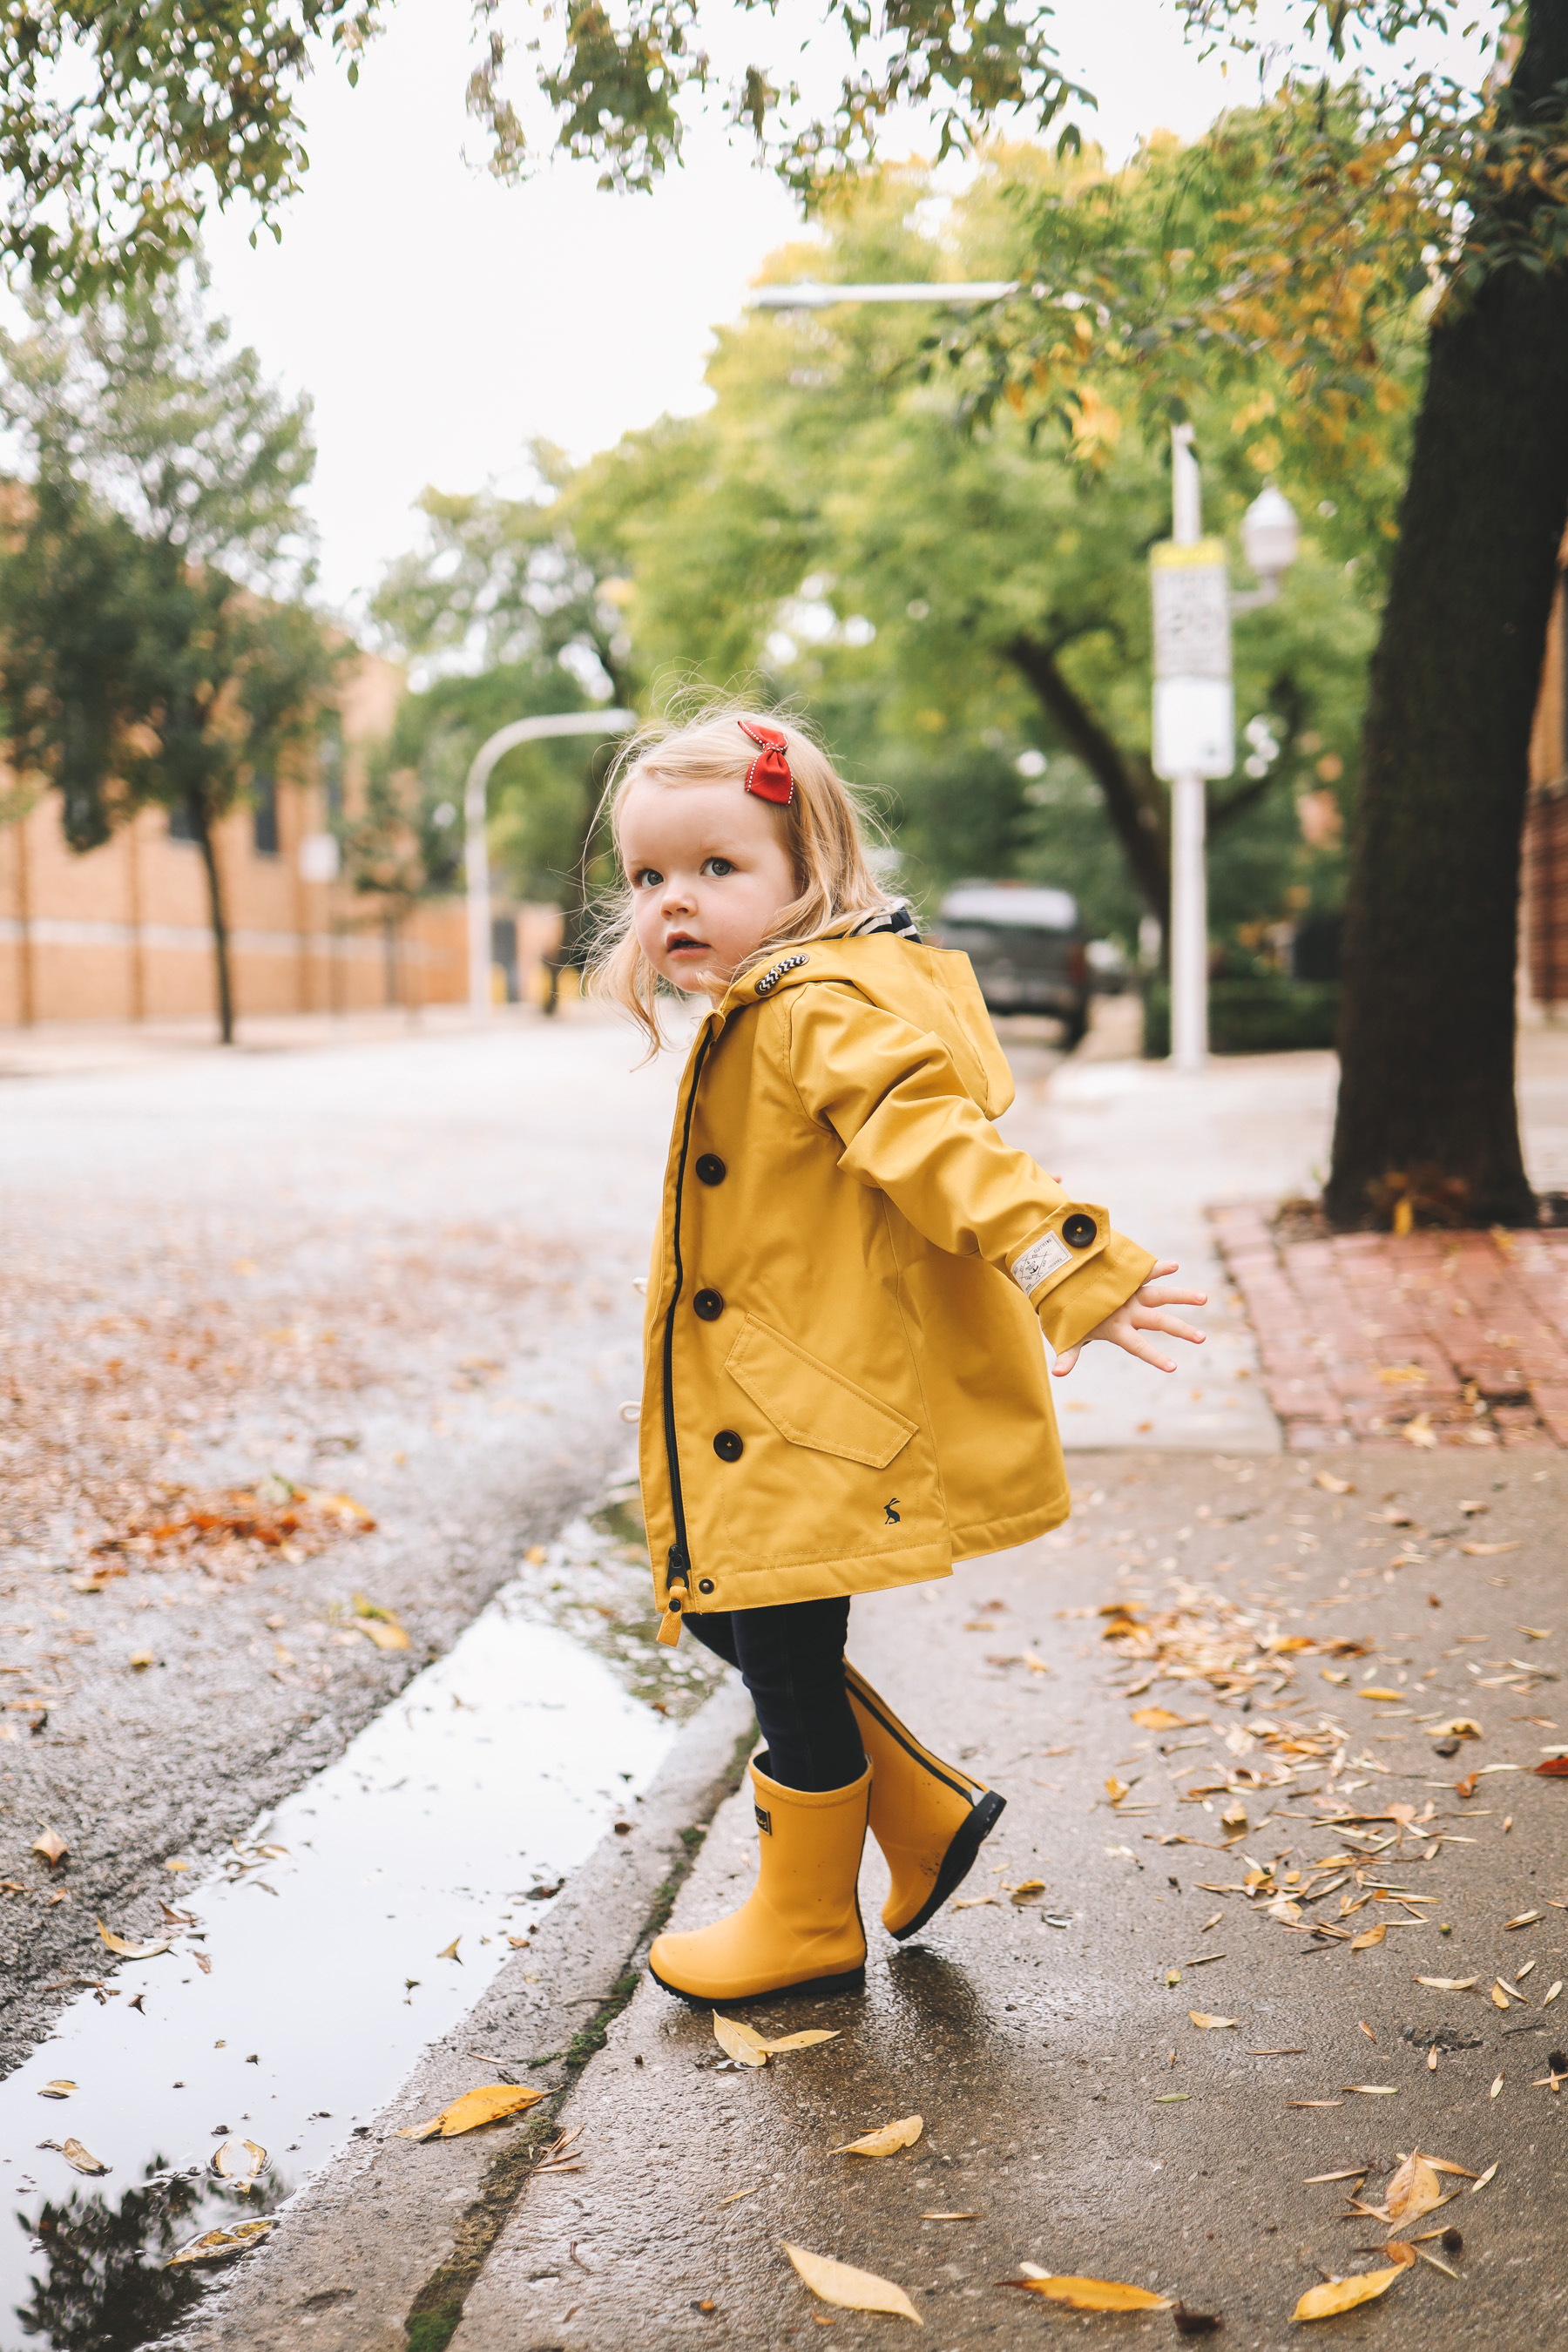 Joules rain gear for kids